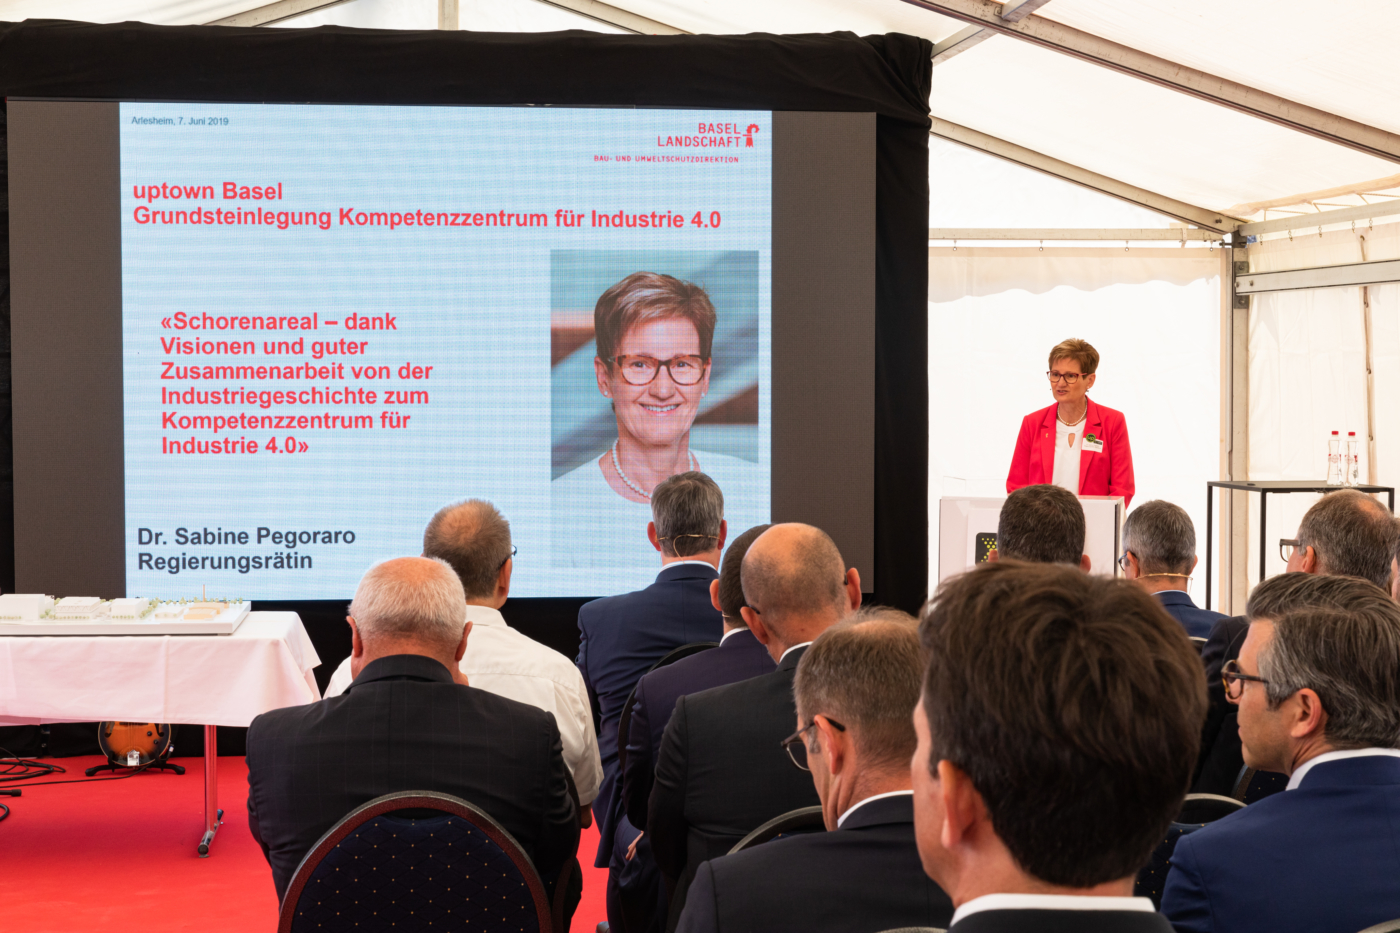 Photos for this media folder, Government Councillor Dr Sabine Pegoraro praises the pioneering spirit of the investors in her opening discourse. © Copyright Sara Barth, Basel  Digitale Medienmappe «Laying the uptownBasel foundation stone: a quantum leap for the industry», uptownBasel